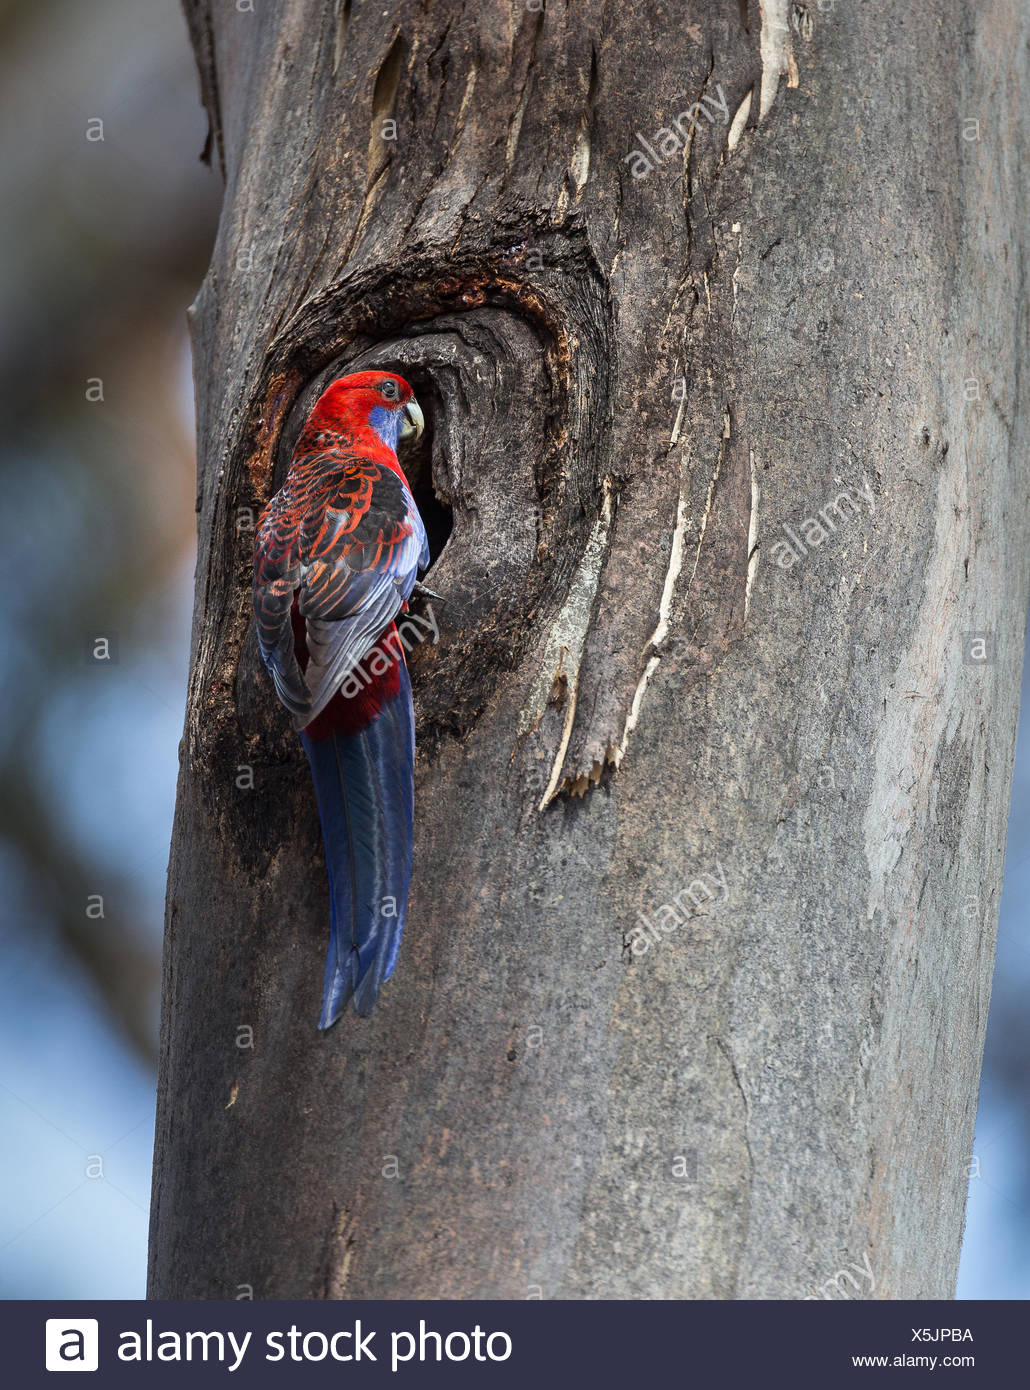 A crimson rosella, Platycercus elegans, at the entrance to its nest in a tree trunk. - Stock Image